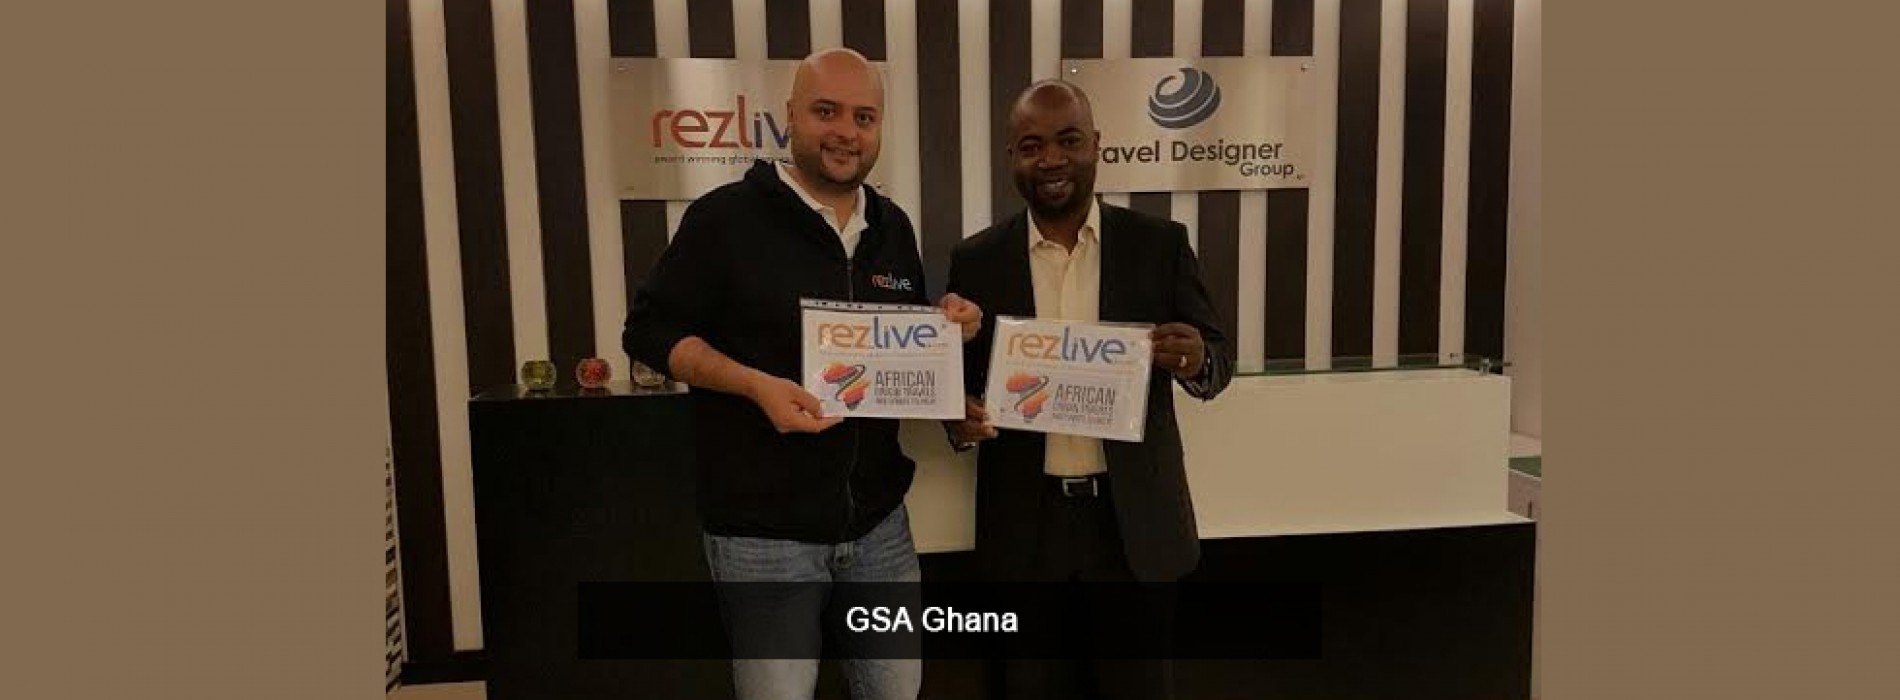 """RezLive.com appoints """"African Origin Travels & Sports Tourism"""" as its General Sales Agent in Ghana"""